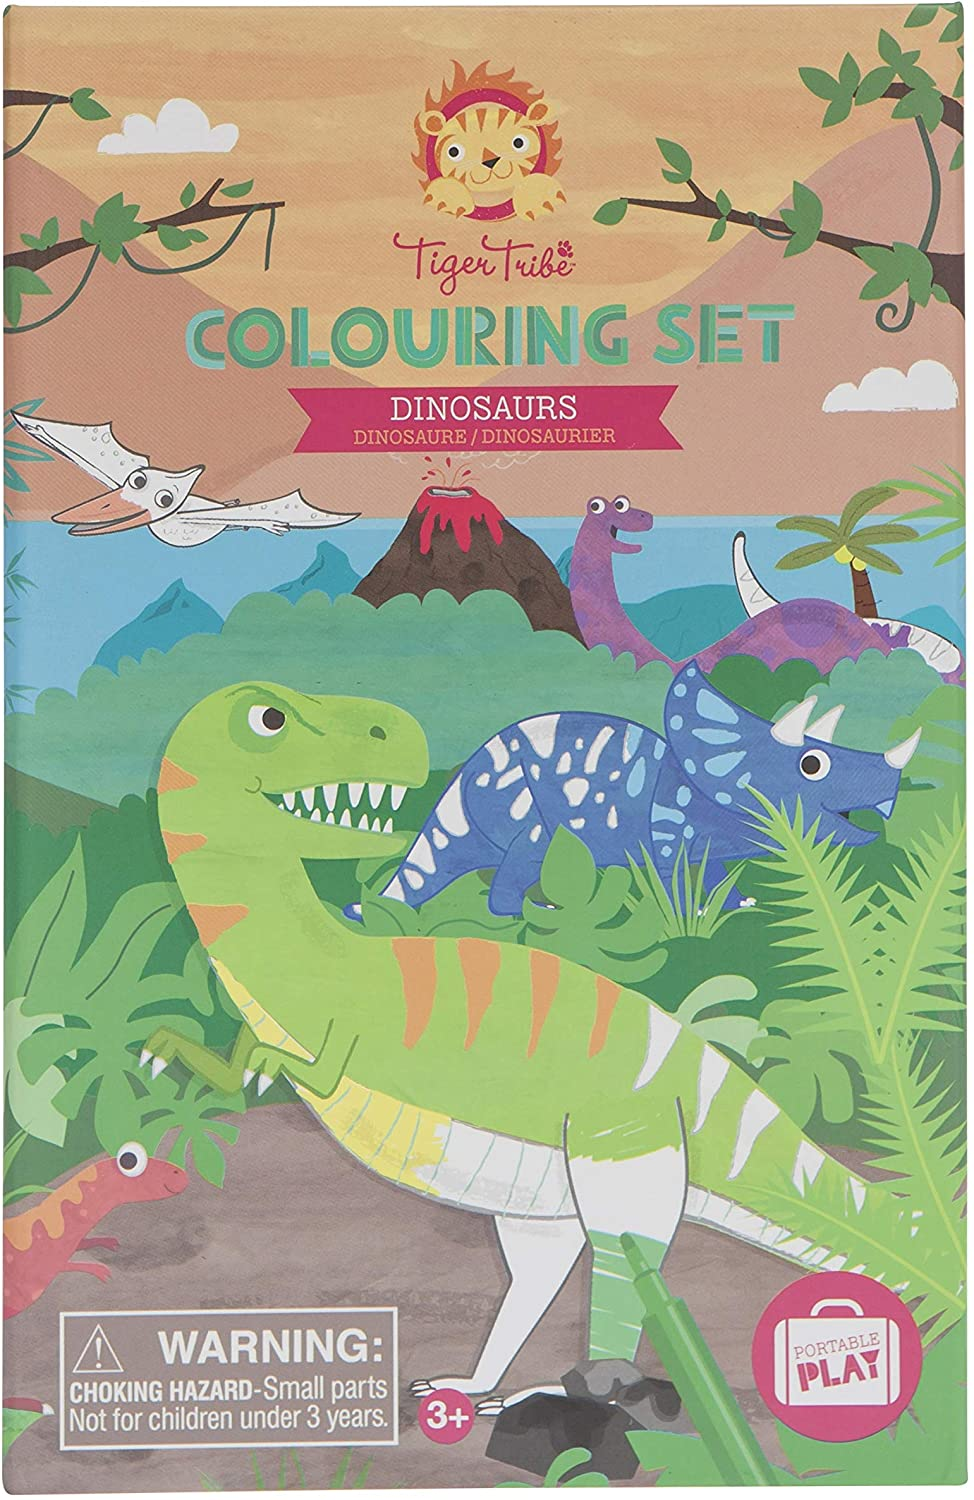 Colouring Set: Dinosaurs